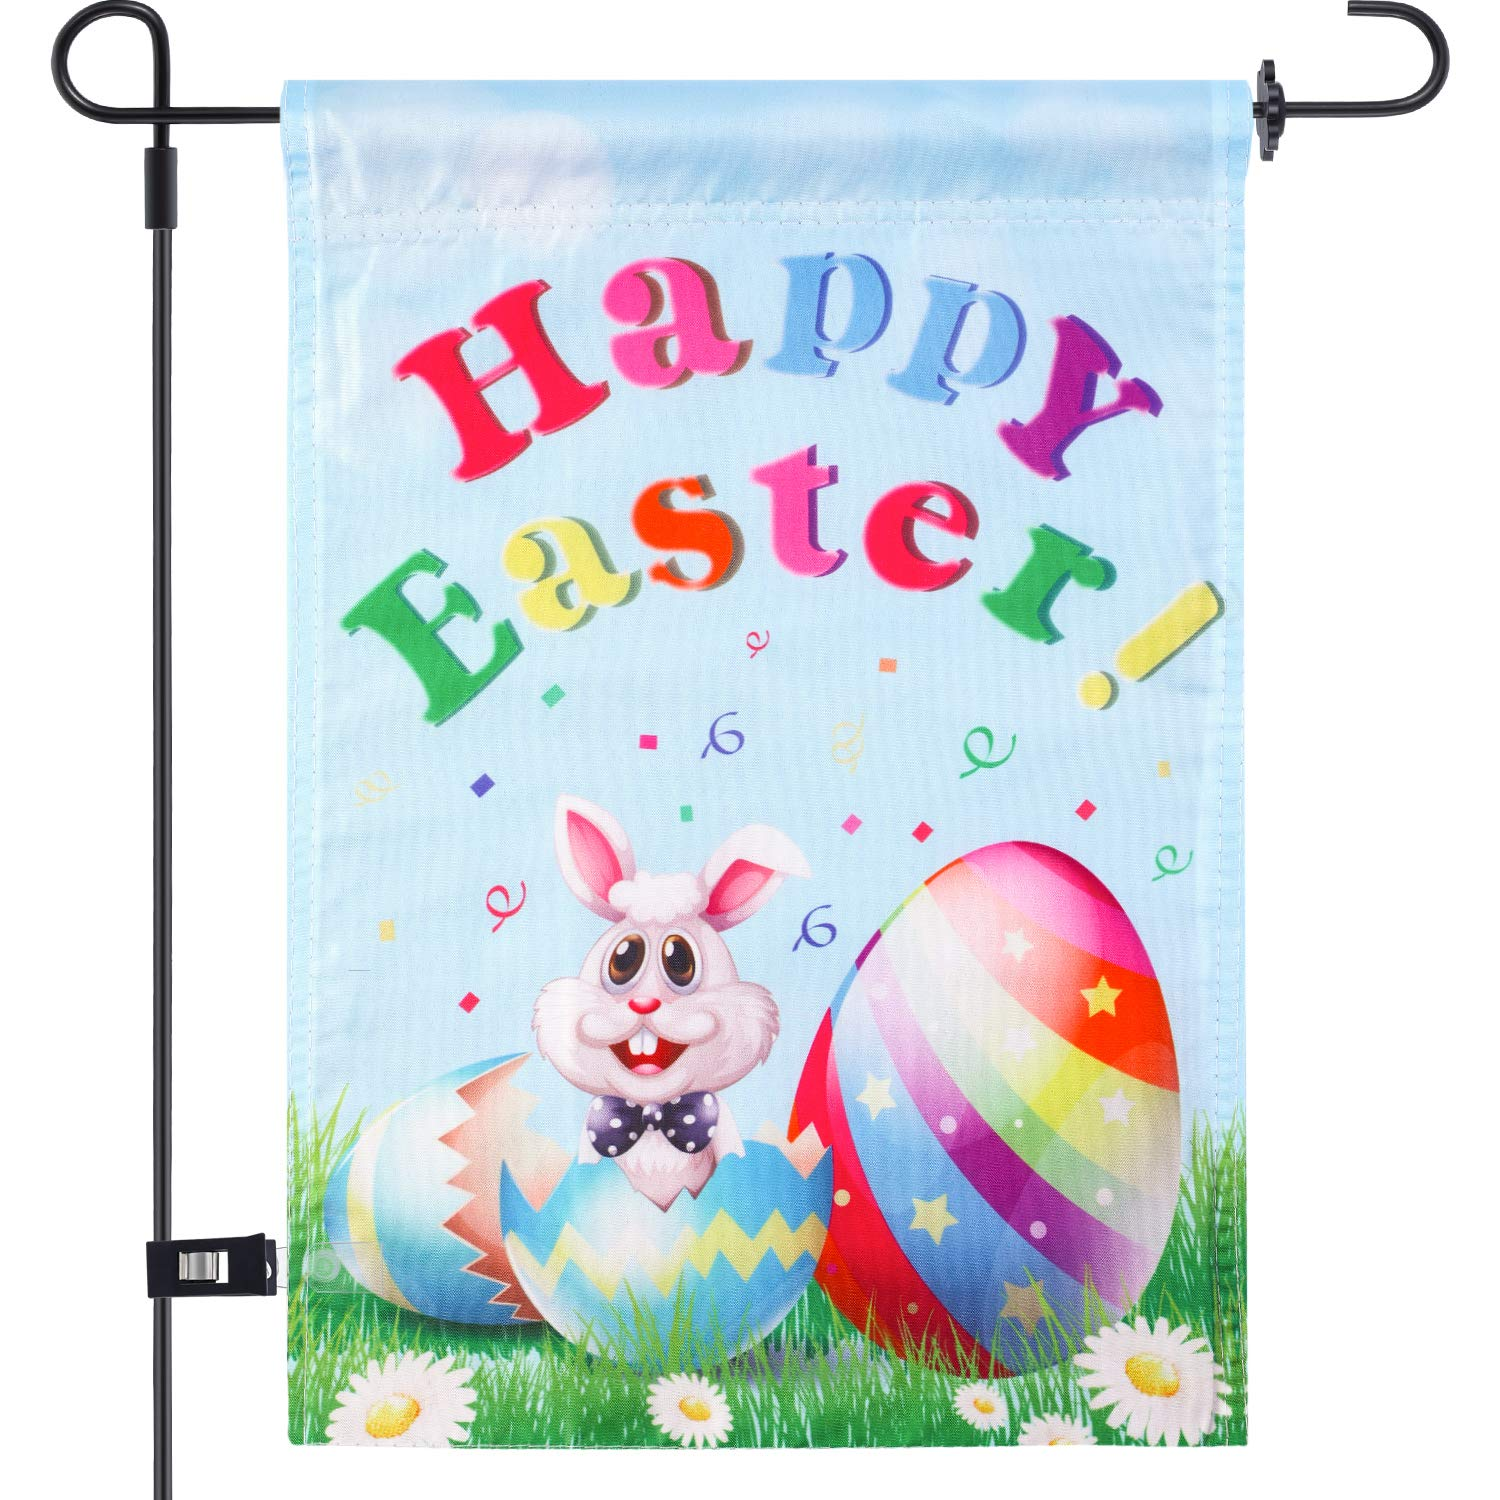 Chuangdi Egg and Rabbit Garden Flag 12 x 18 Inch Decorative Easter Flag Spring Garden Flag with 1 Rubber Stopper and 1 Clear Anti-Wind Clip (Color 5, 12 x 18 Inch)